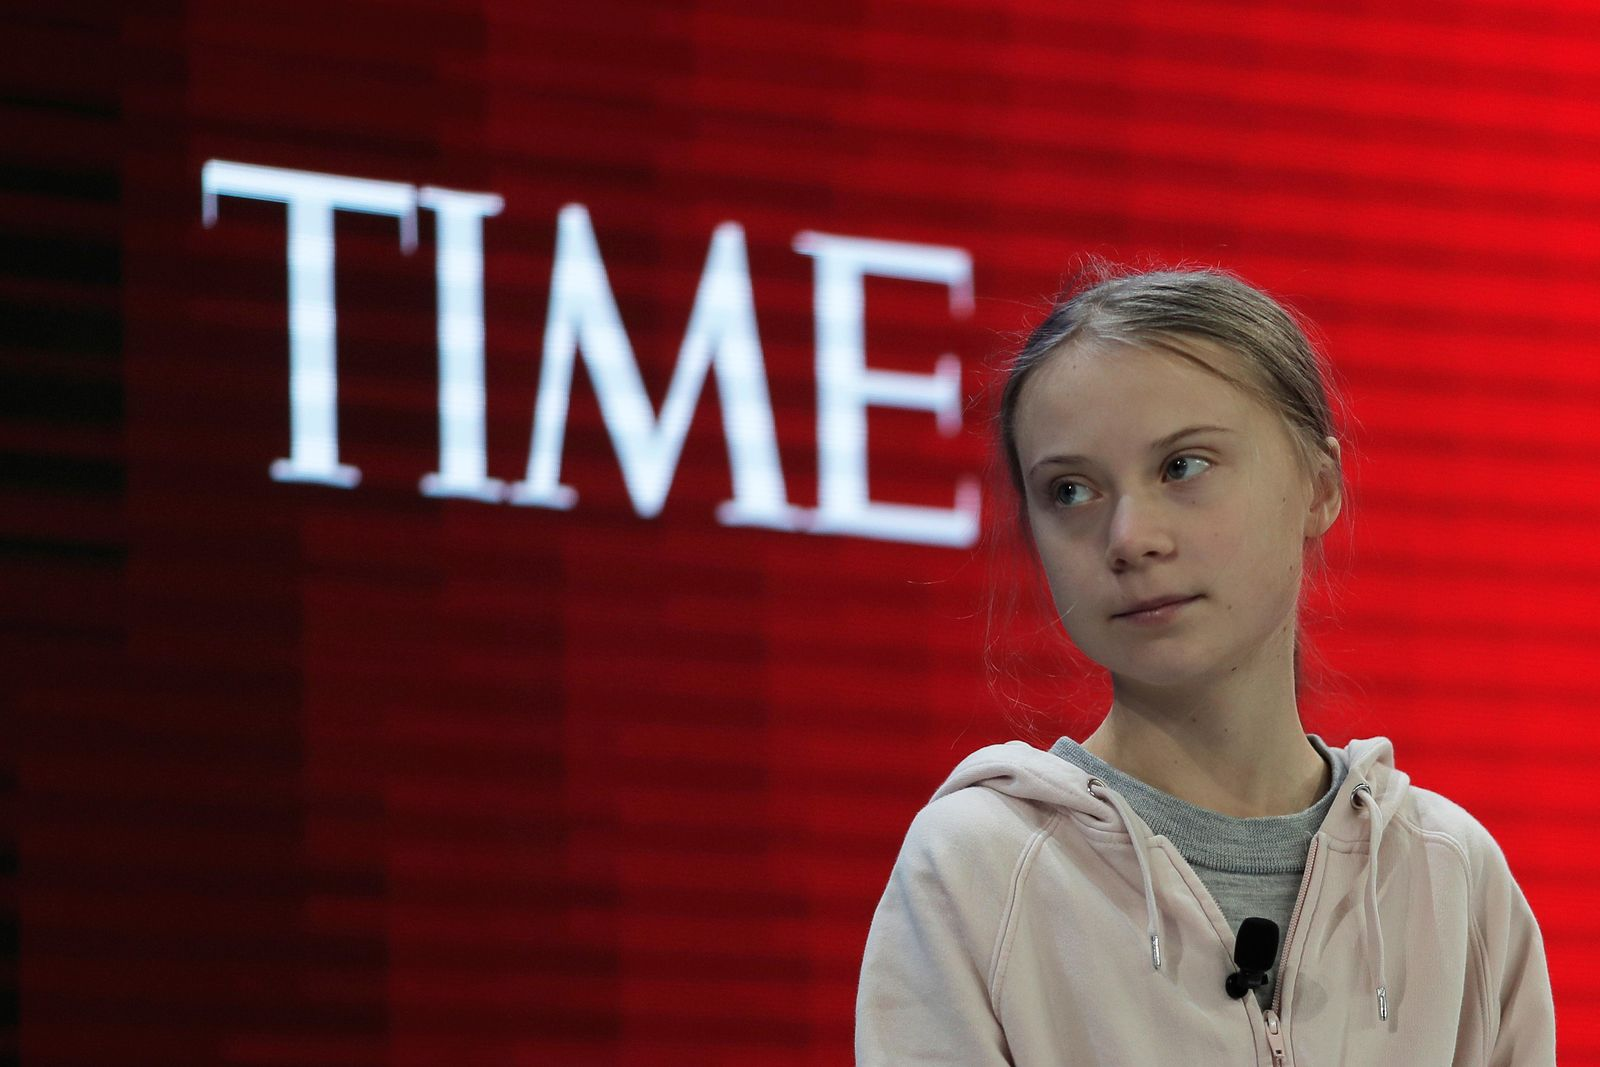 Swedish environmental activist Greta Thunberg takes her seat prior to the opening session of the World Economic Forum in Davos, Switzerland, Tuesday, Jan. 21, 2020. The 50th annual meeting of the forum will take place in Davos from Jan. 20 until Jan. 24, 2020. (AP Photo/Markus Schreiber)